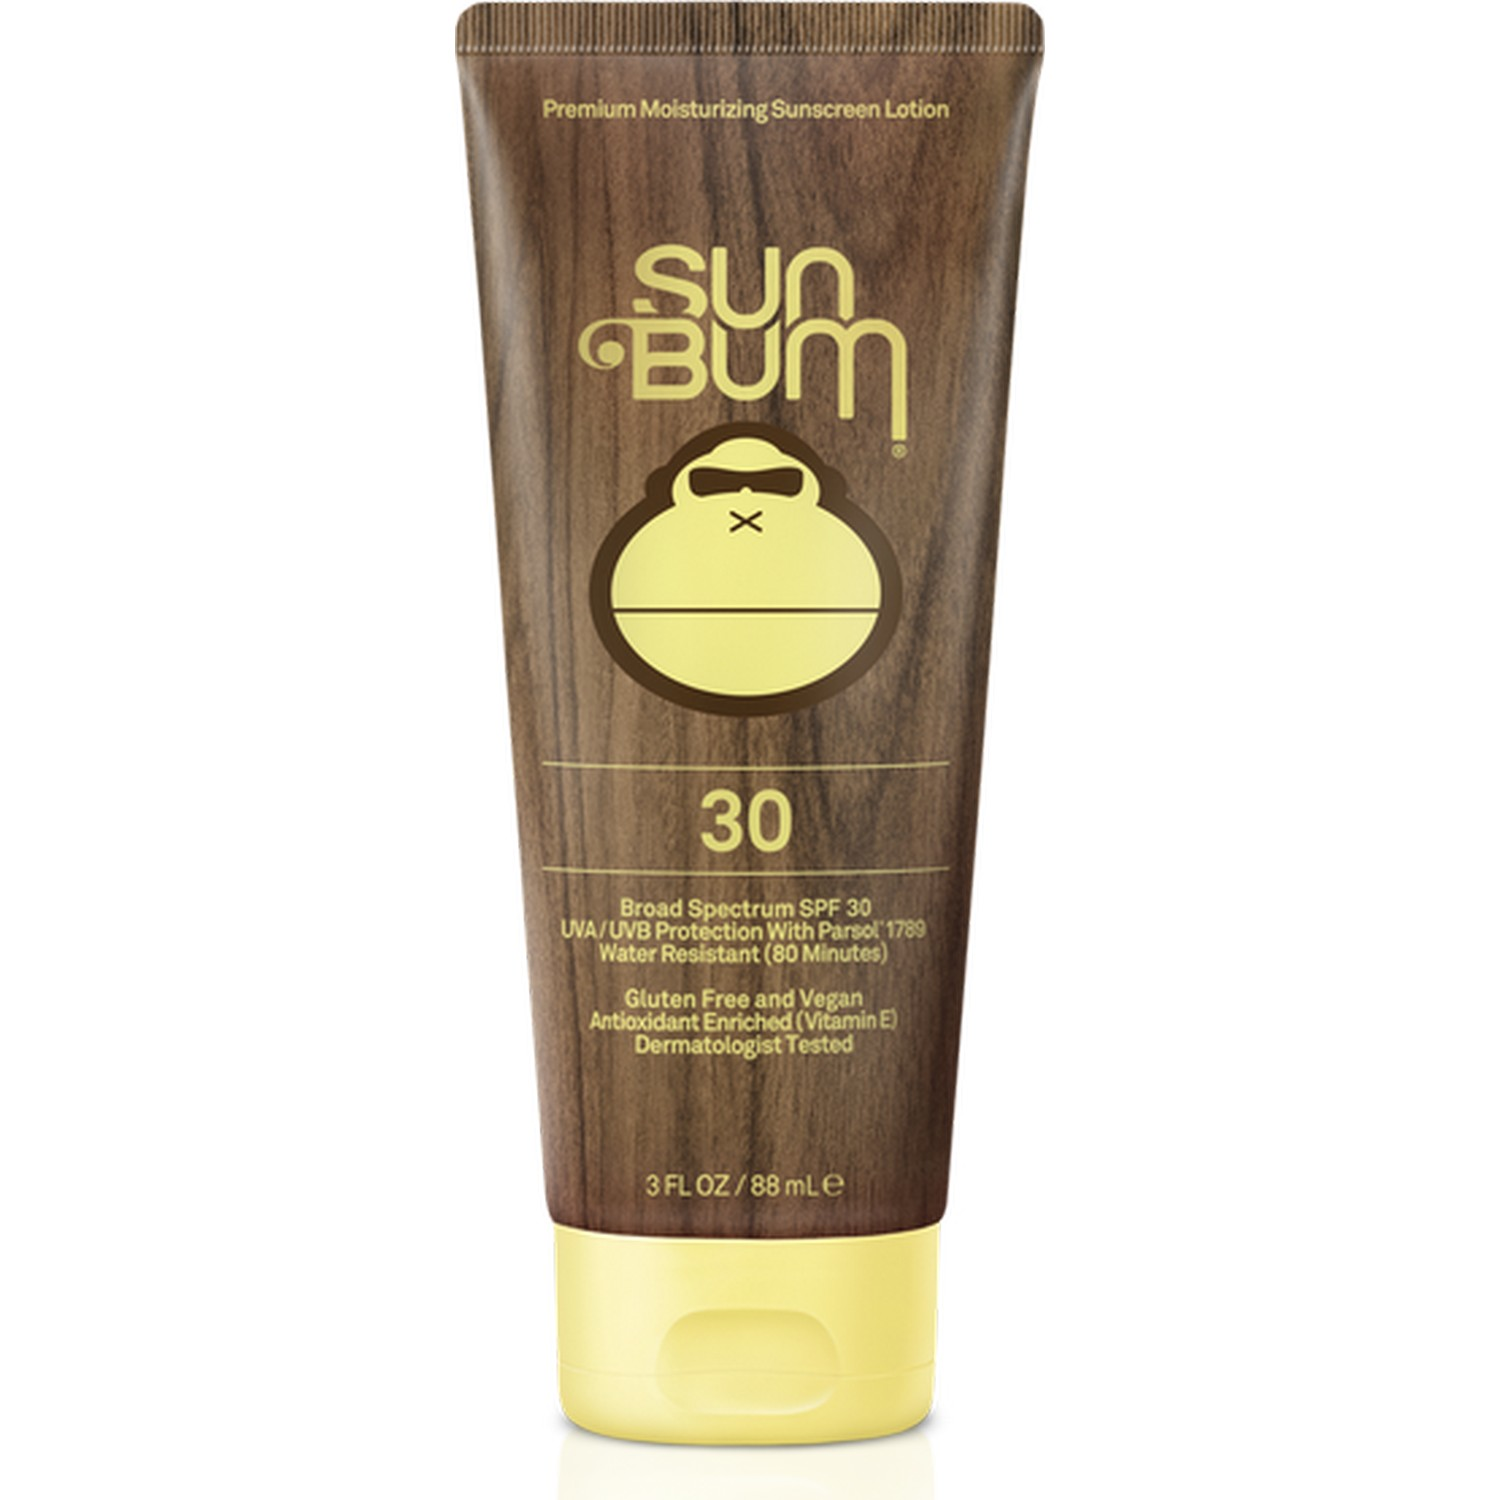 Sun Bum Premium Moisturizing Sunscreen Lotion 30 Broad Spectrum SPF 30 [Tube] (3.0 fl oz / 88 ml)